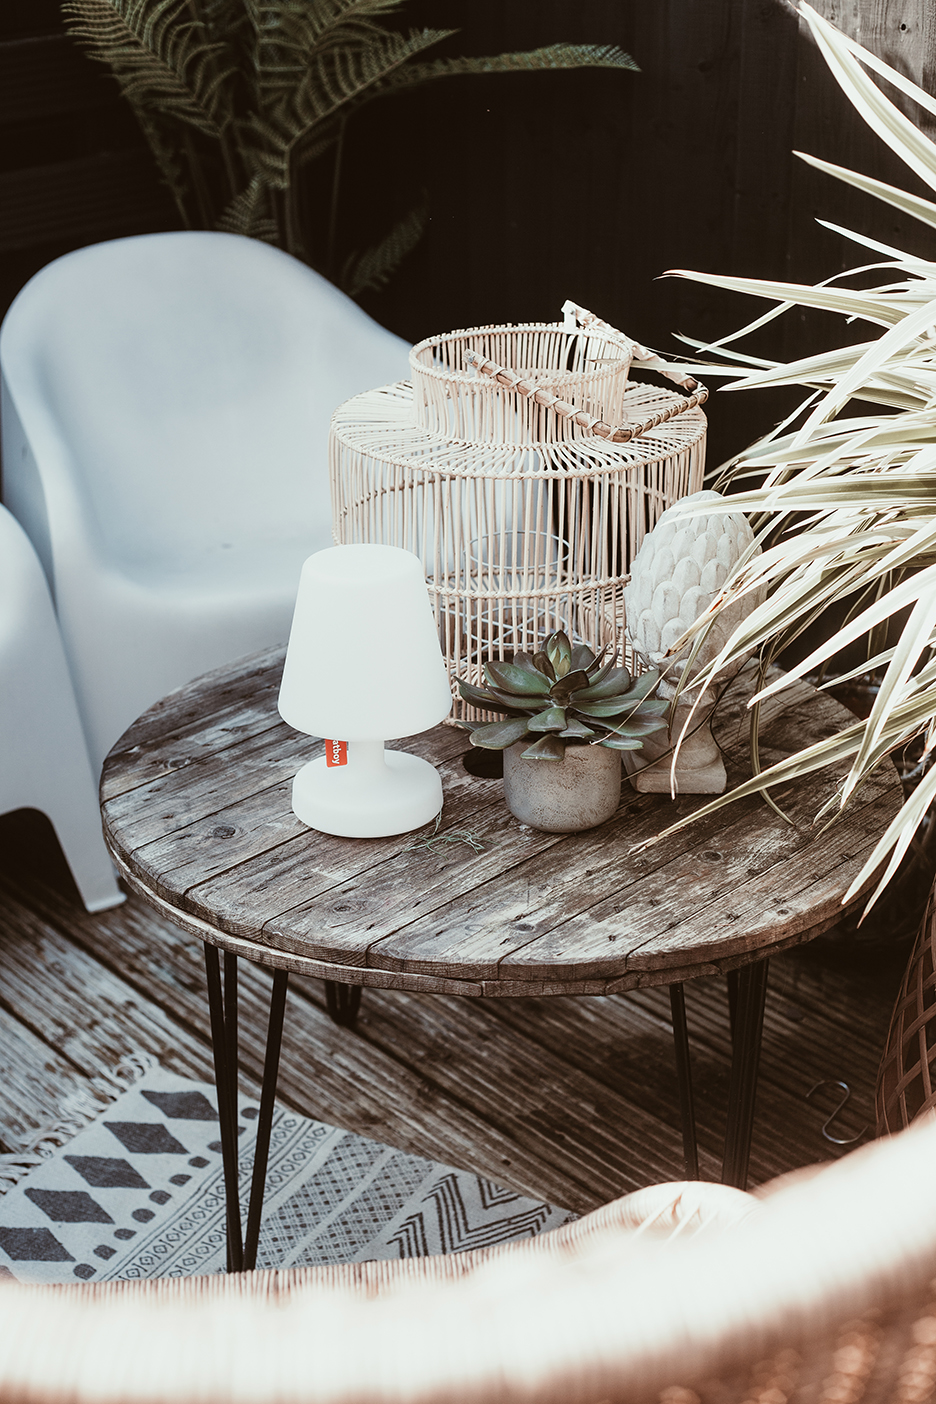 Light up your garden with quirky lights